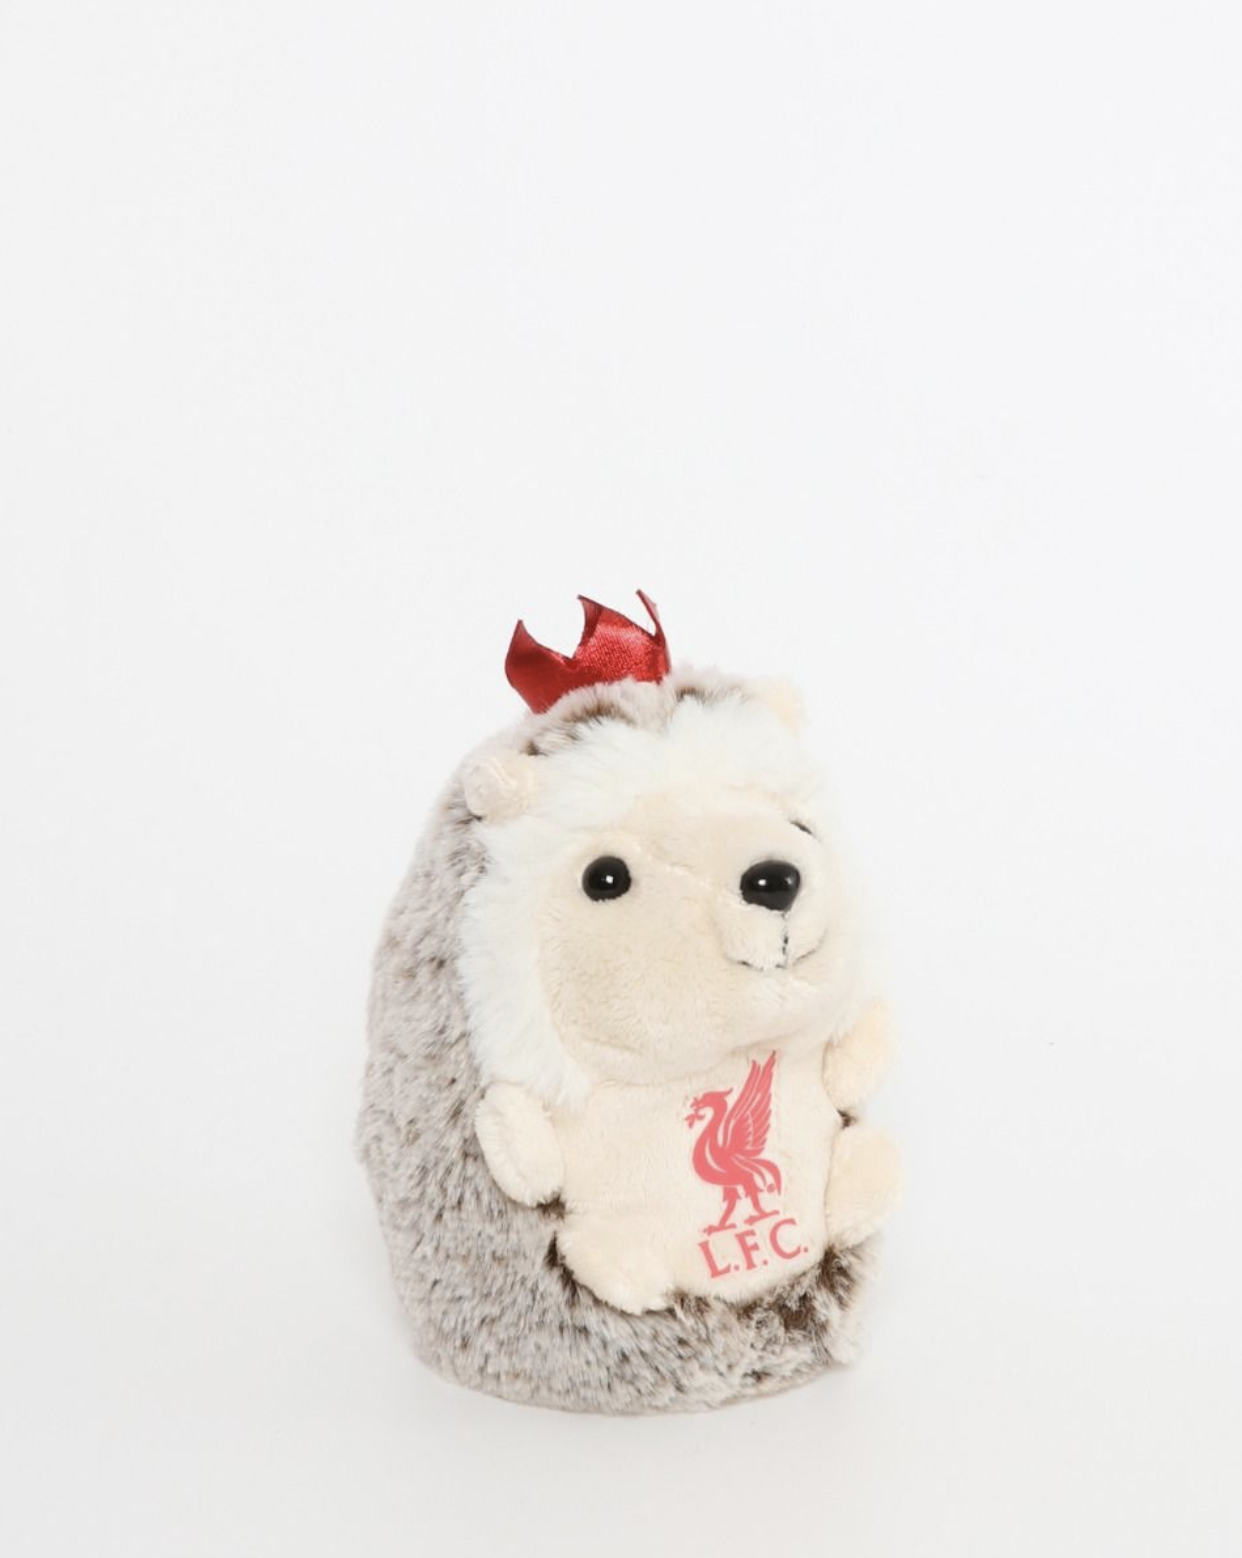 Liverpool FC Hedgehog Plush Toy